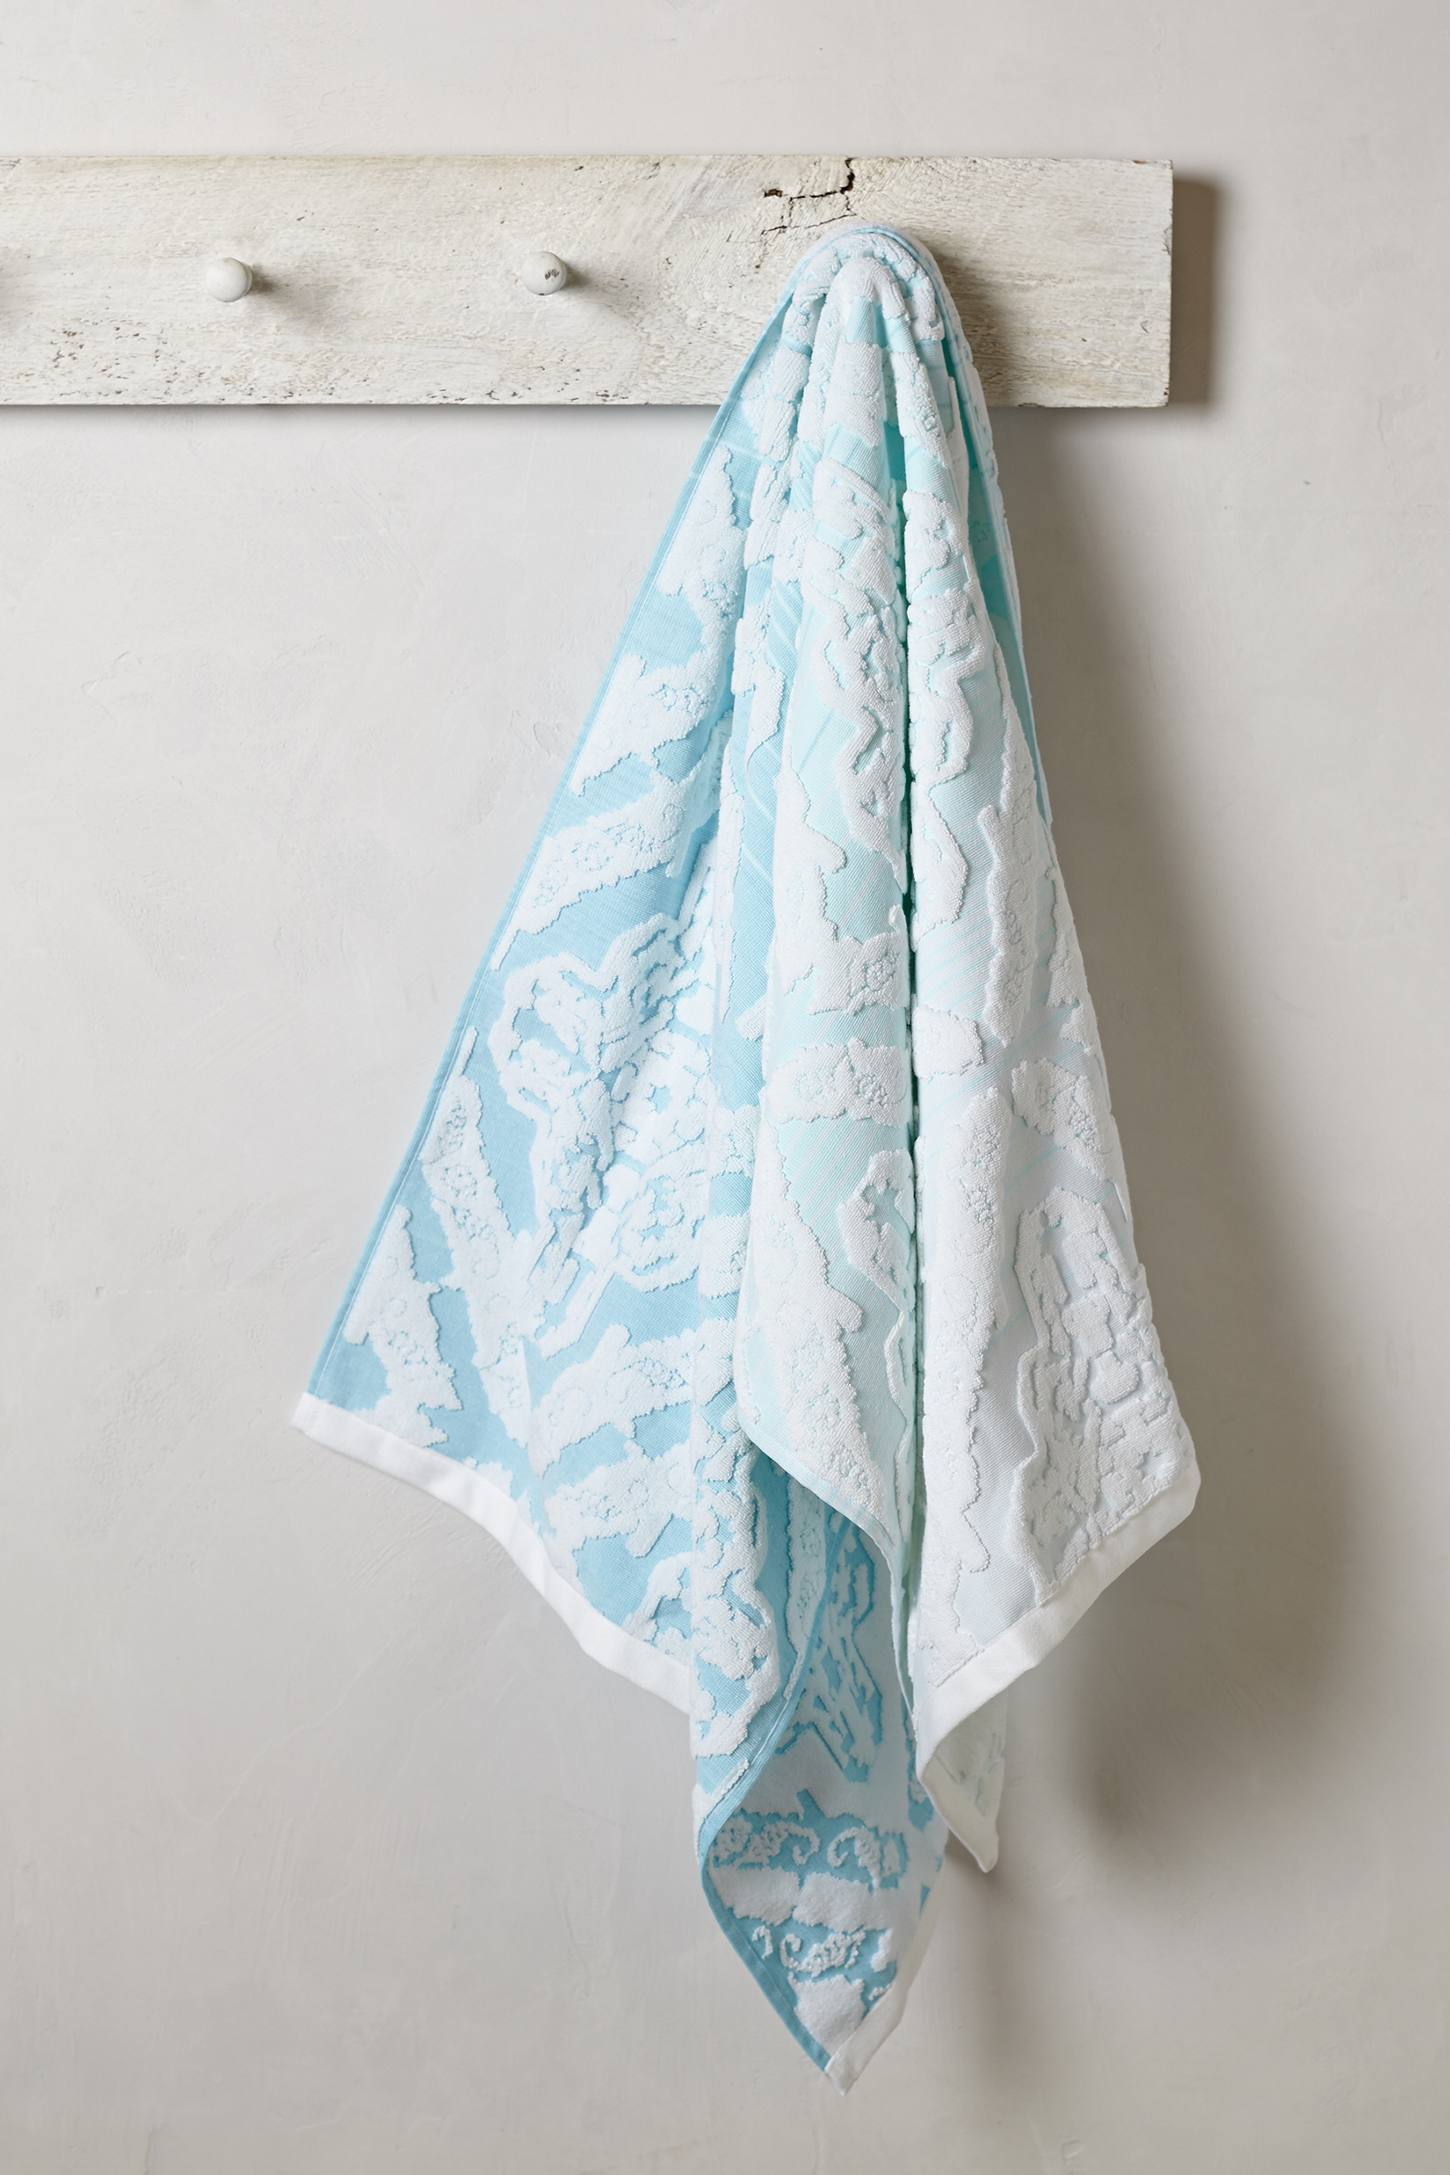 Slide View: 3: Woven Ombre Towel Collection